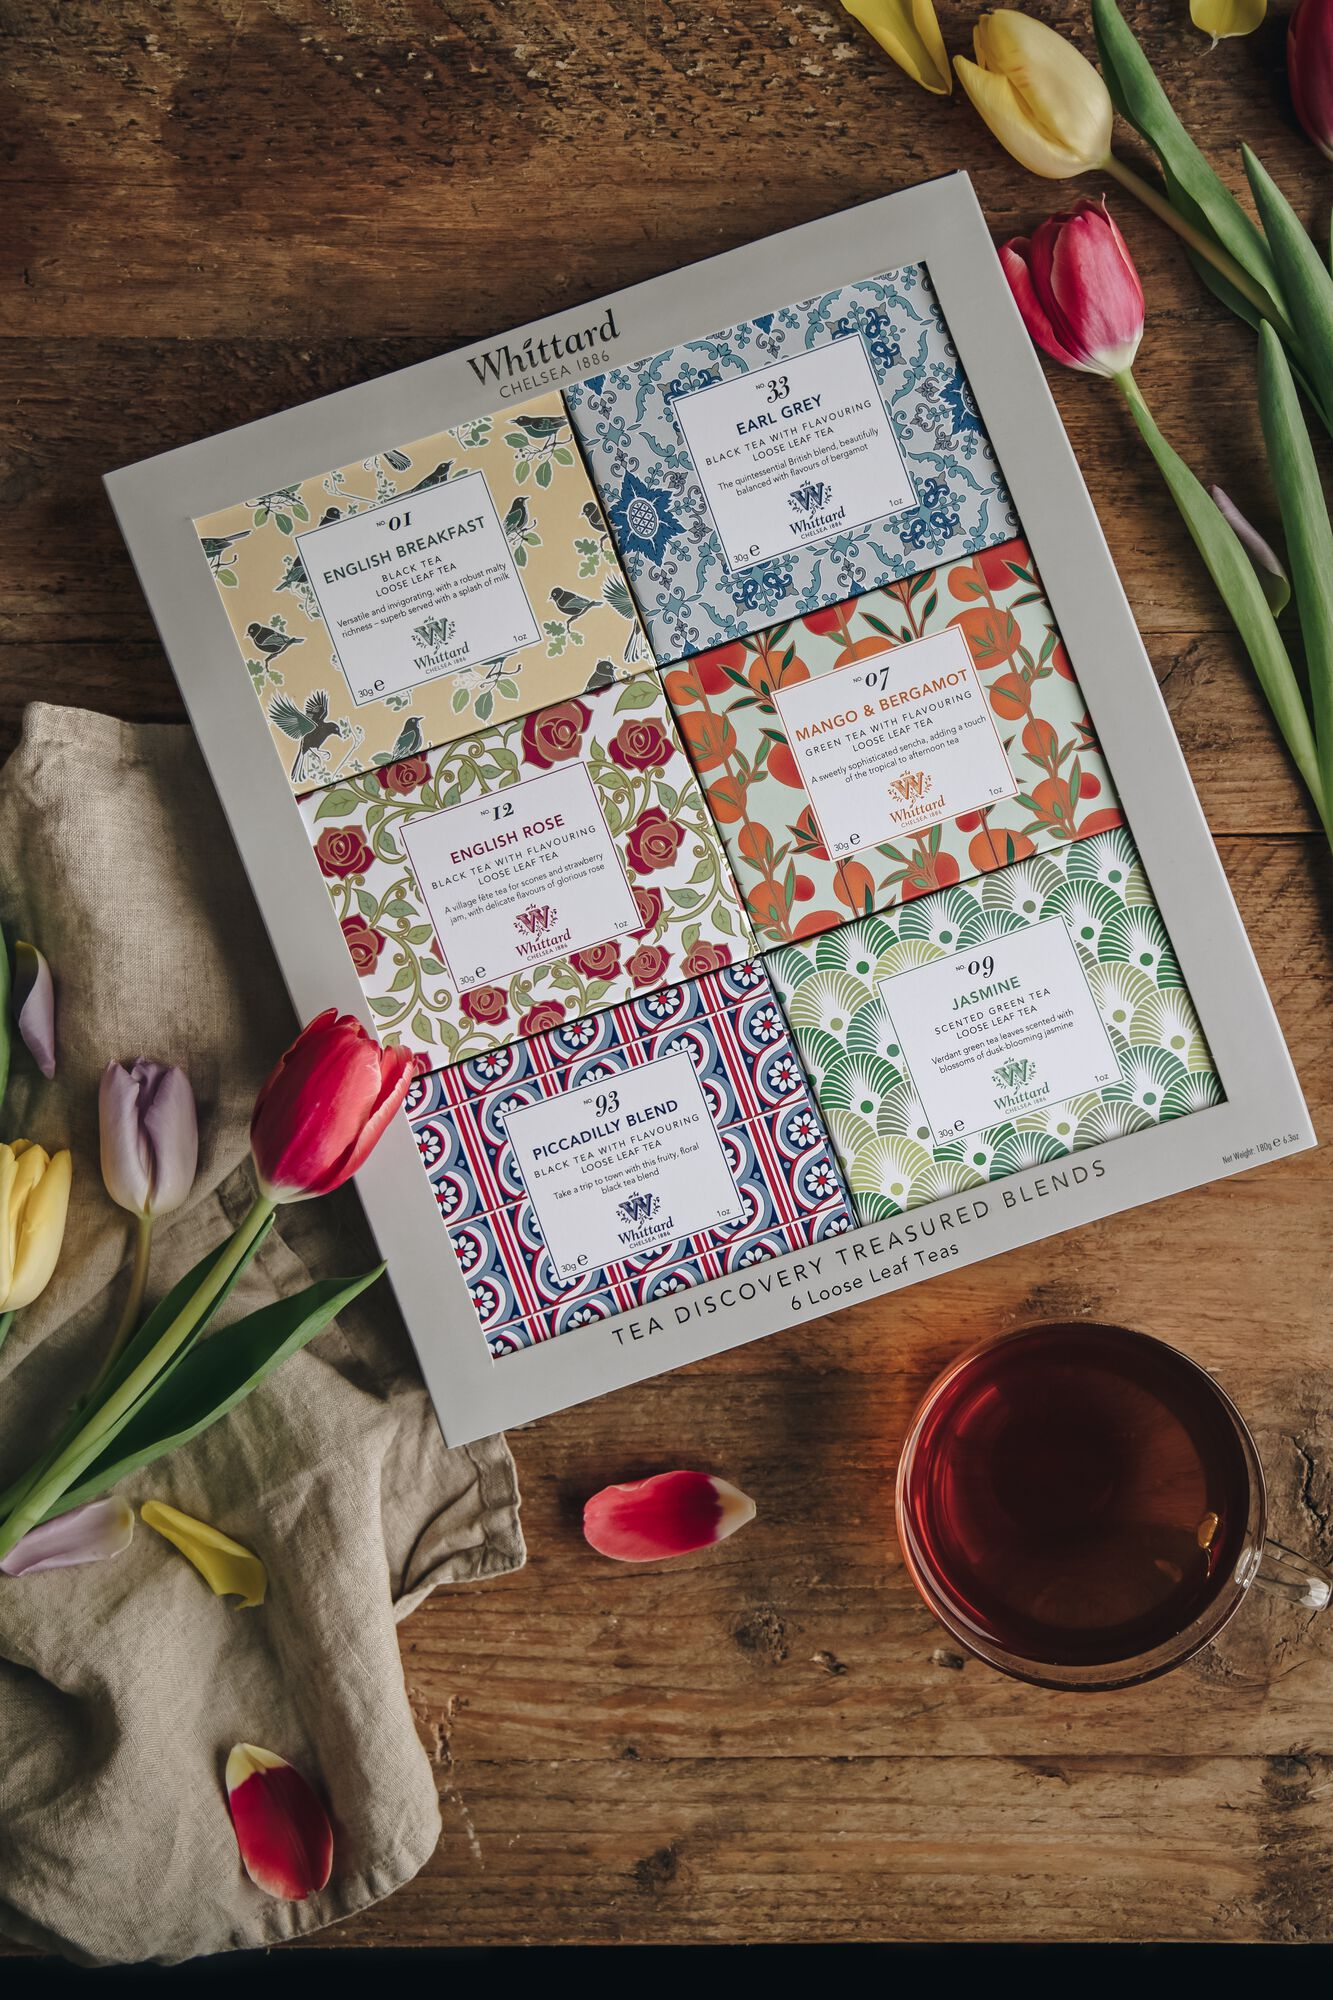 12 Mother's Day gift ideas to suit all budgets starting from £2.99 with a bunch of ethical, sustainable and vegan options.